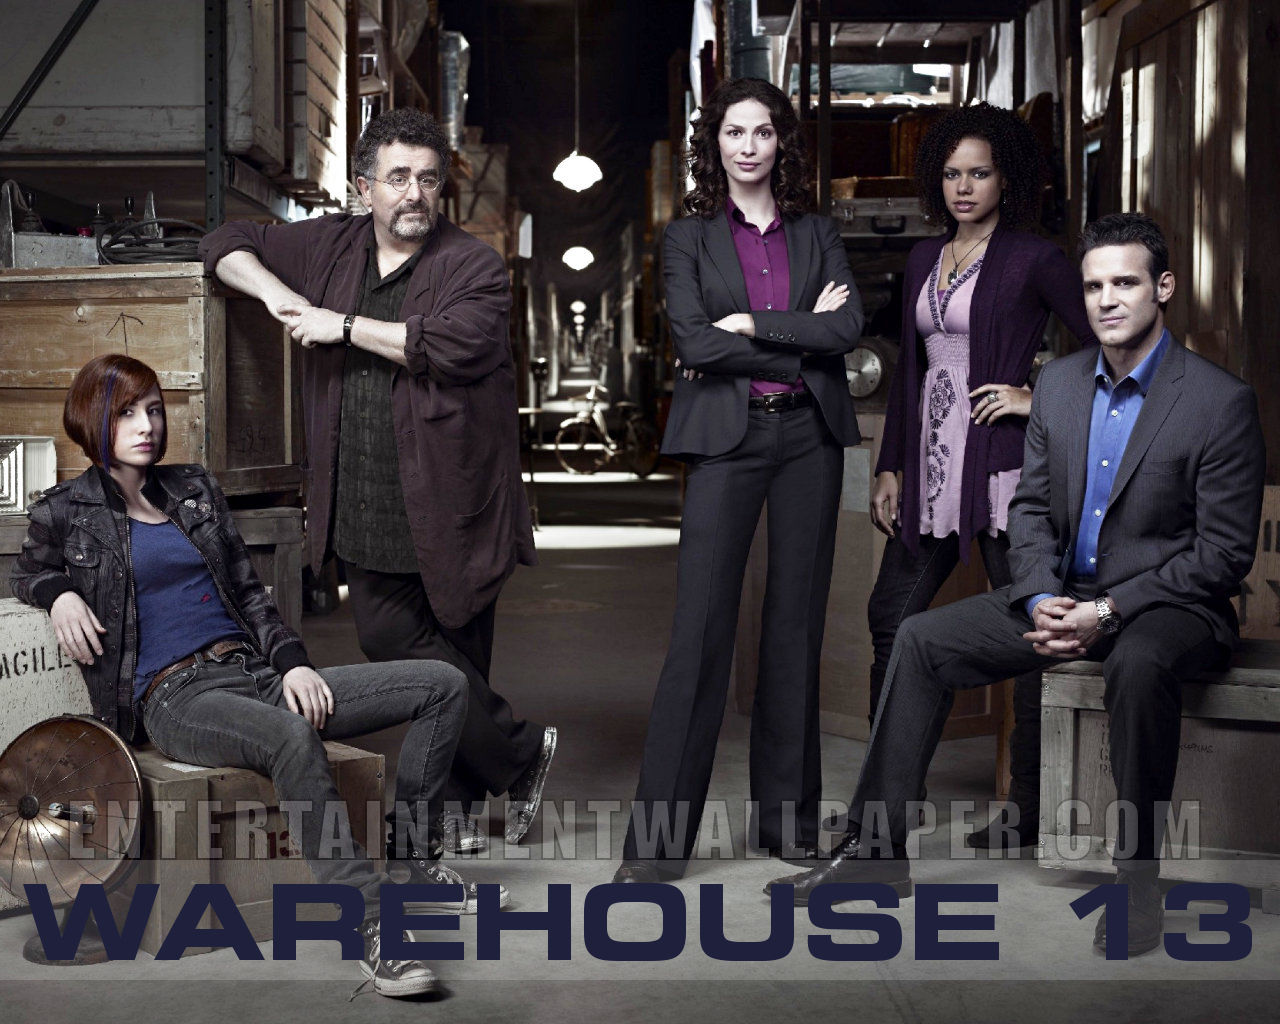 http://img3.wikia.nocookie.net/__cb20120420035626/warehouse13/images/2/2f/Tv_warehouse_13_01.jpg